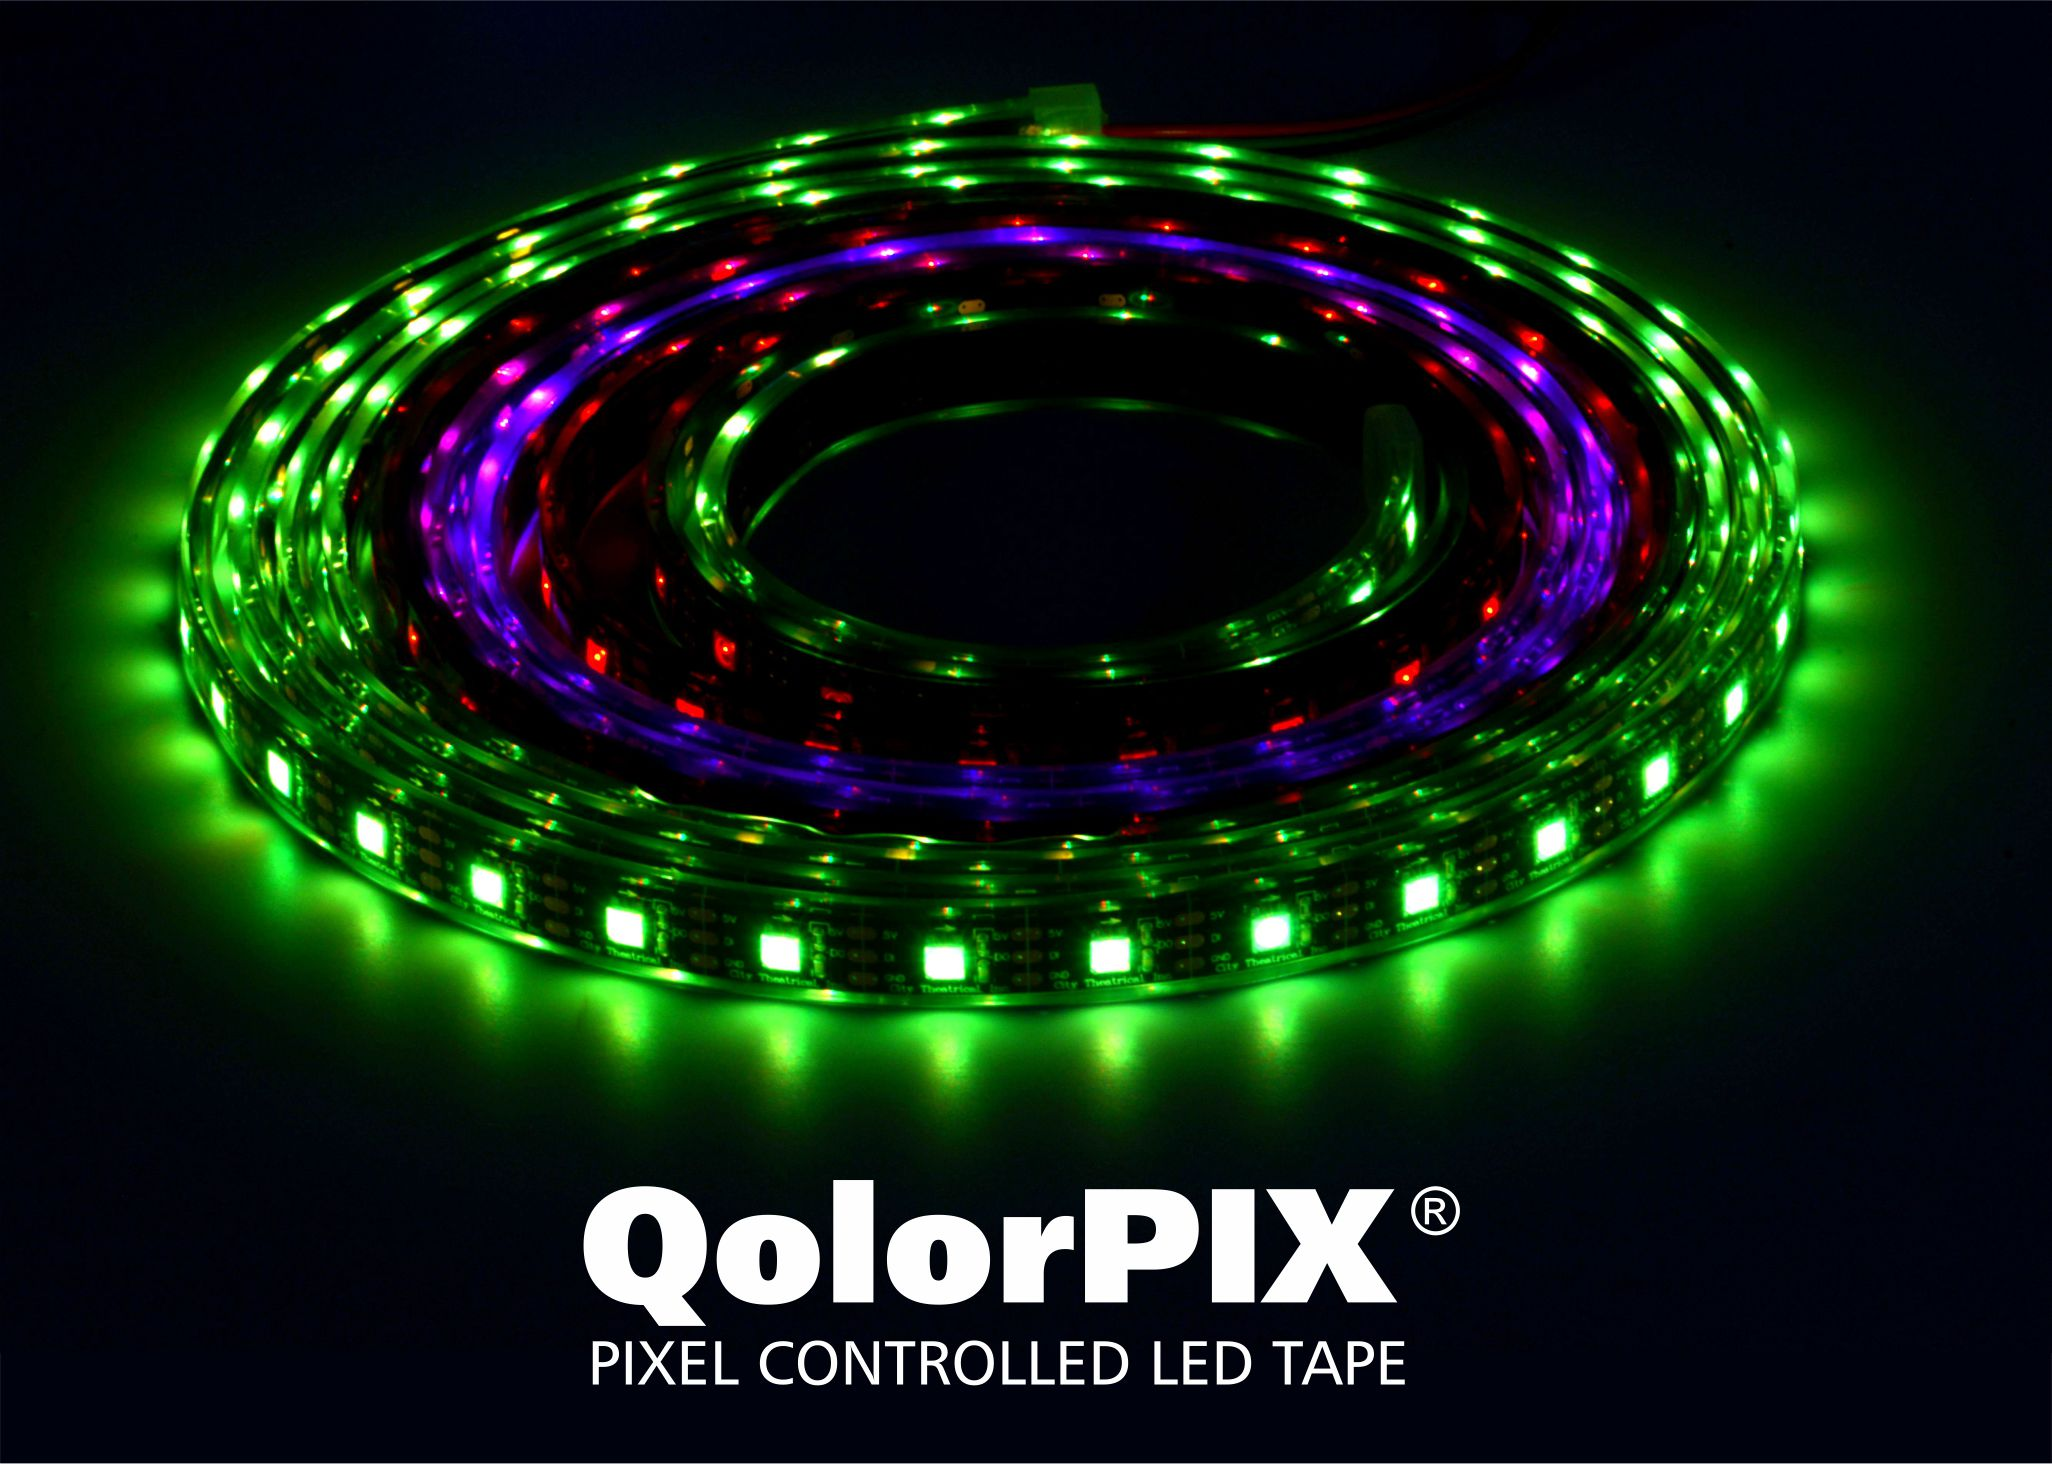 QolorPIX Pixel Controlled LED Tape